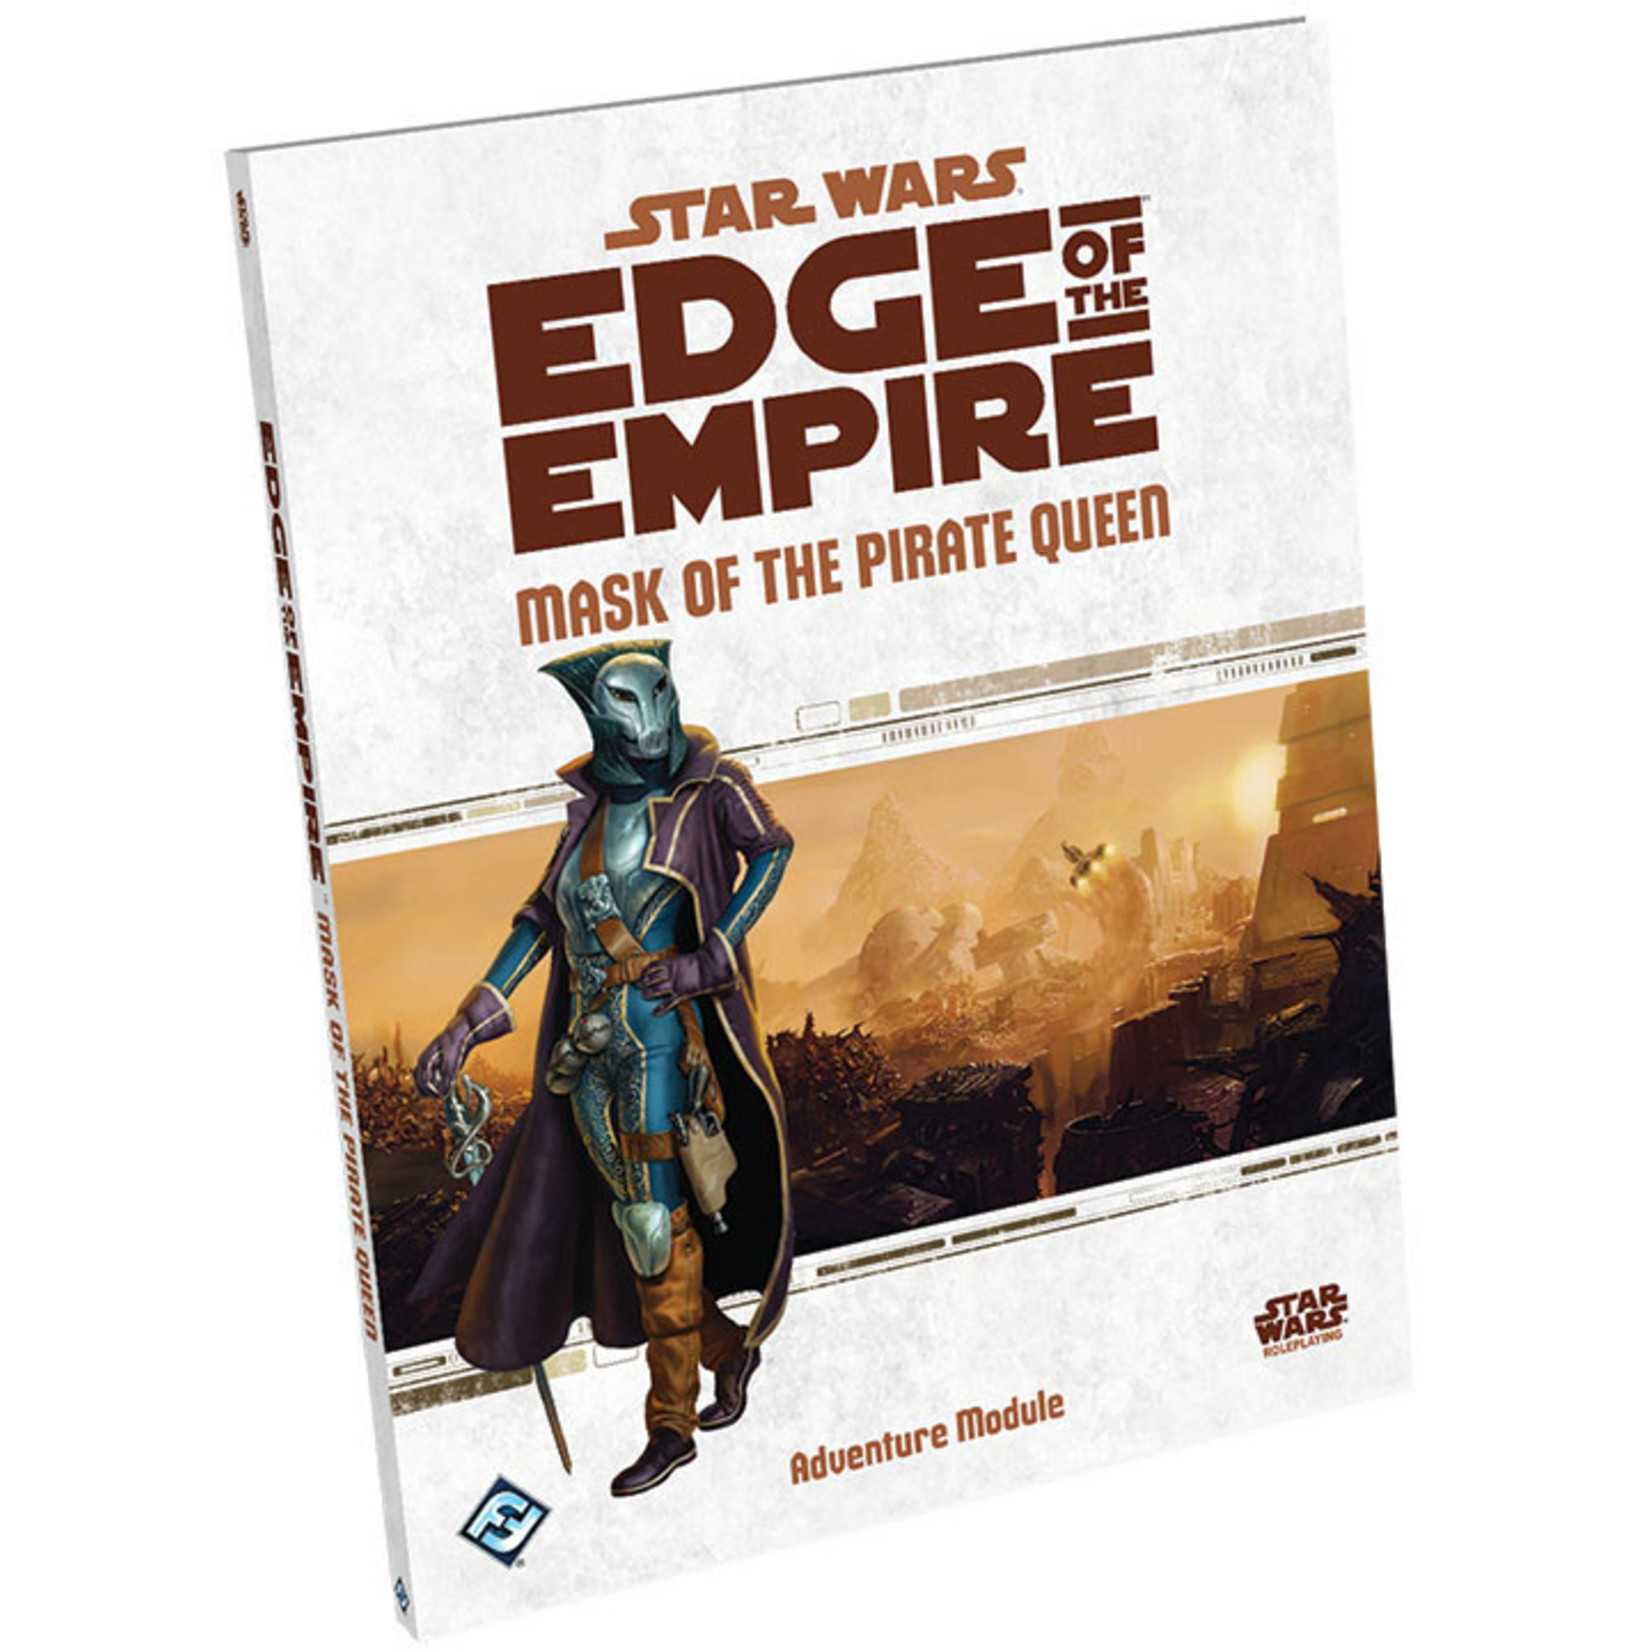 Fantasy Flight Games Star Wars RPG: Edge of the Empire - Mask of the Pirate Queen Adventure Hardcover